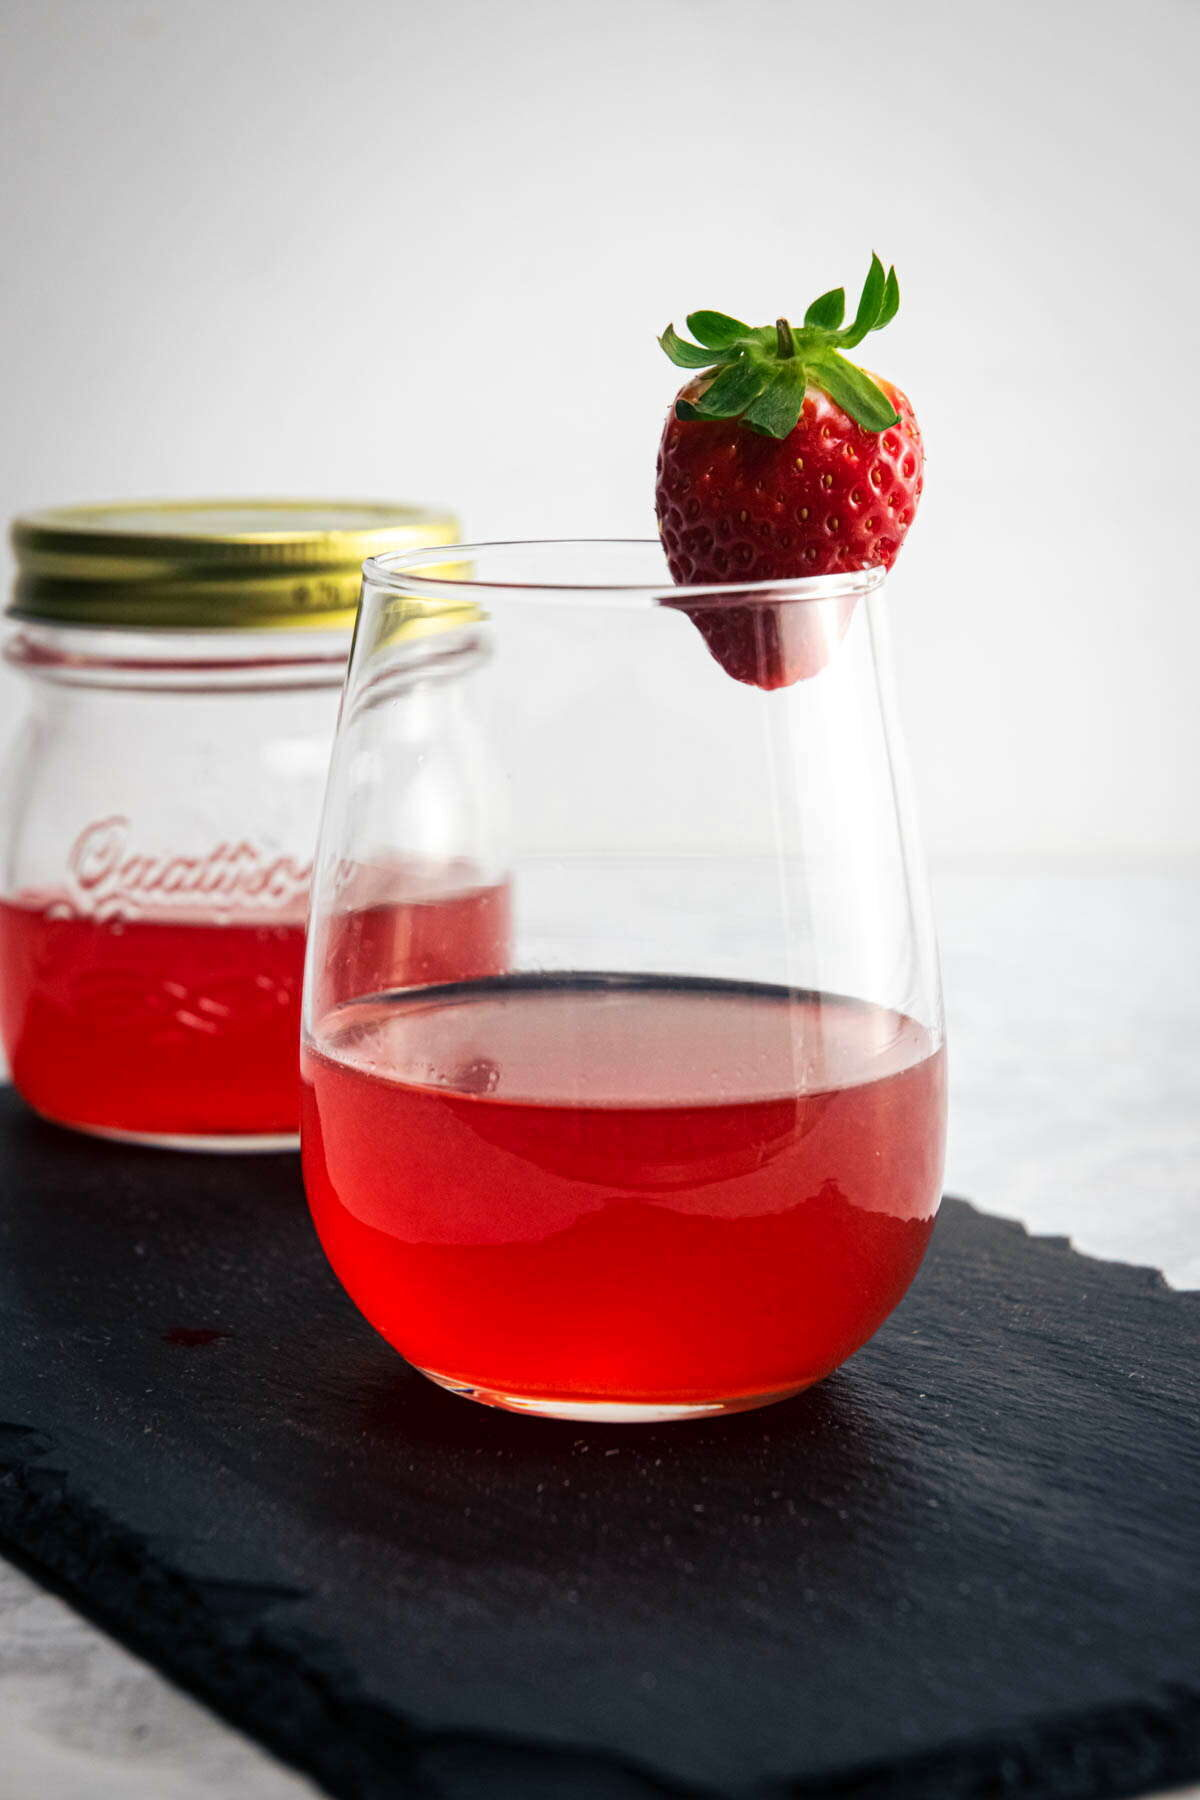 Strawberry liqueur in a jar and wine glass, fresh strawberry on the side.